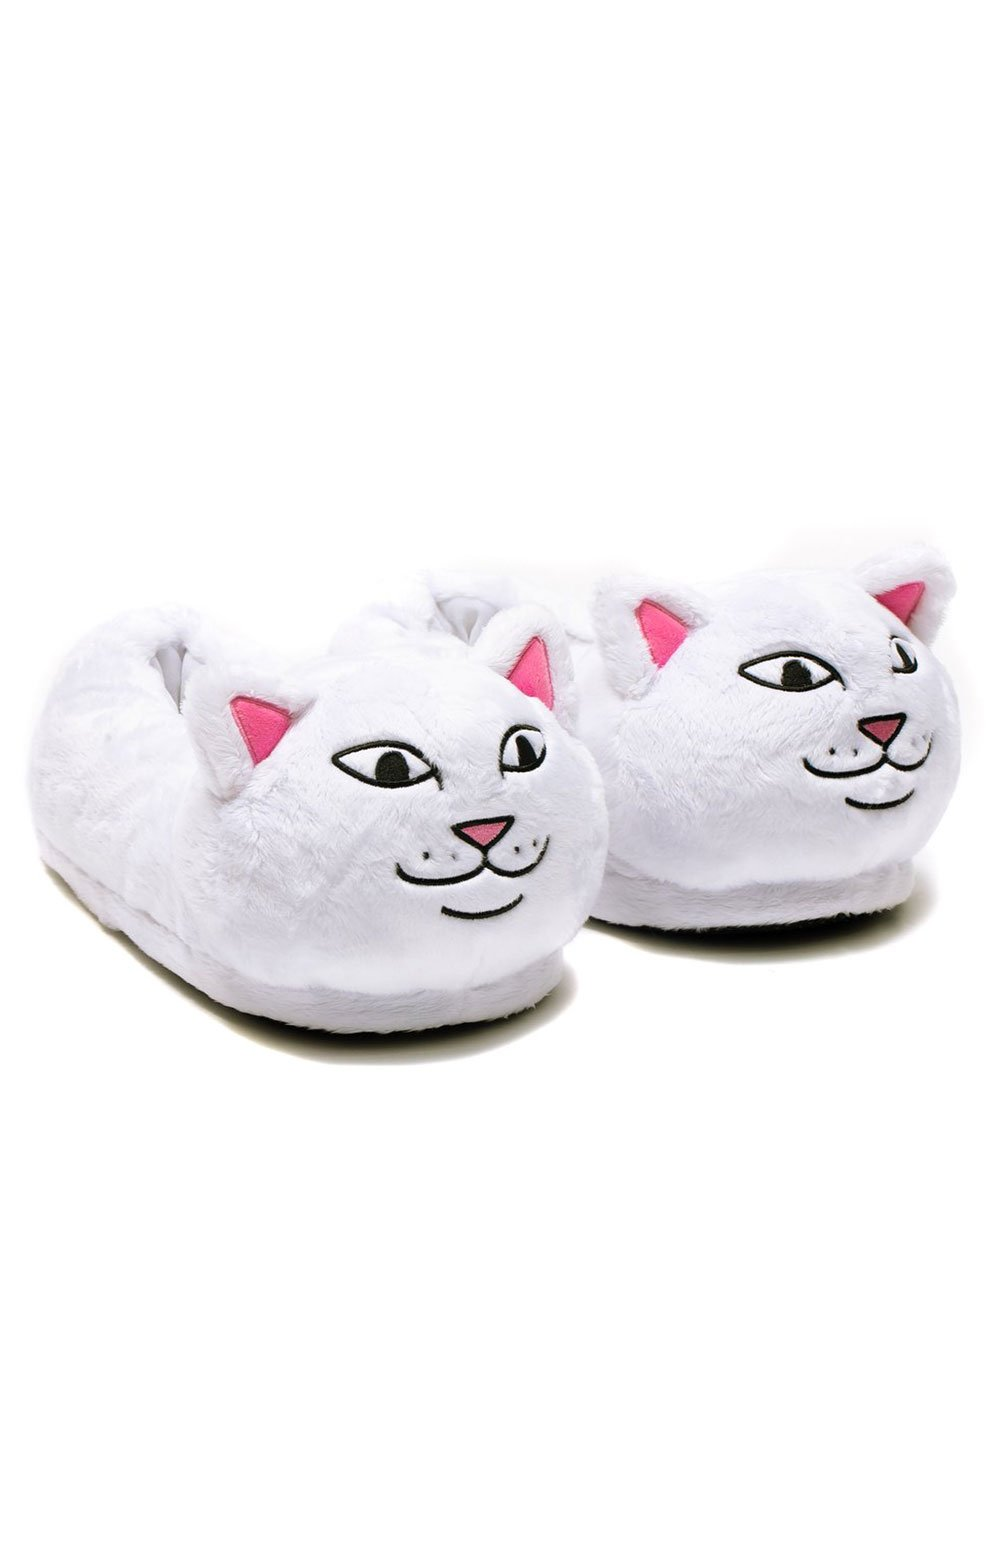 Lord Nermal Slippers - White